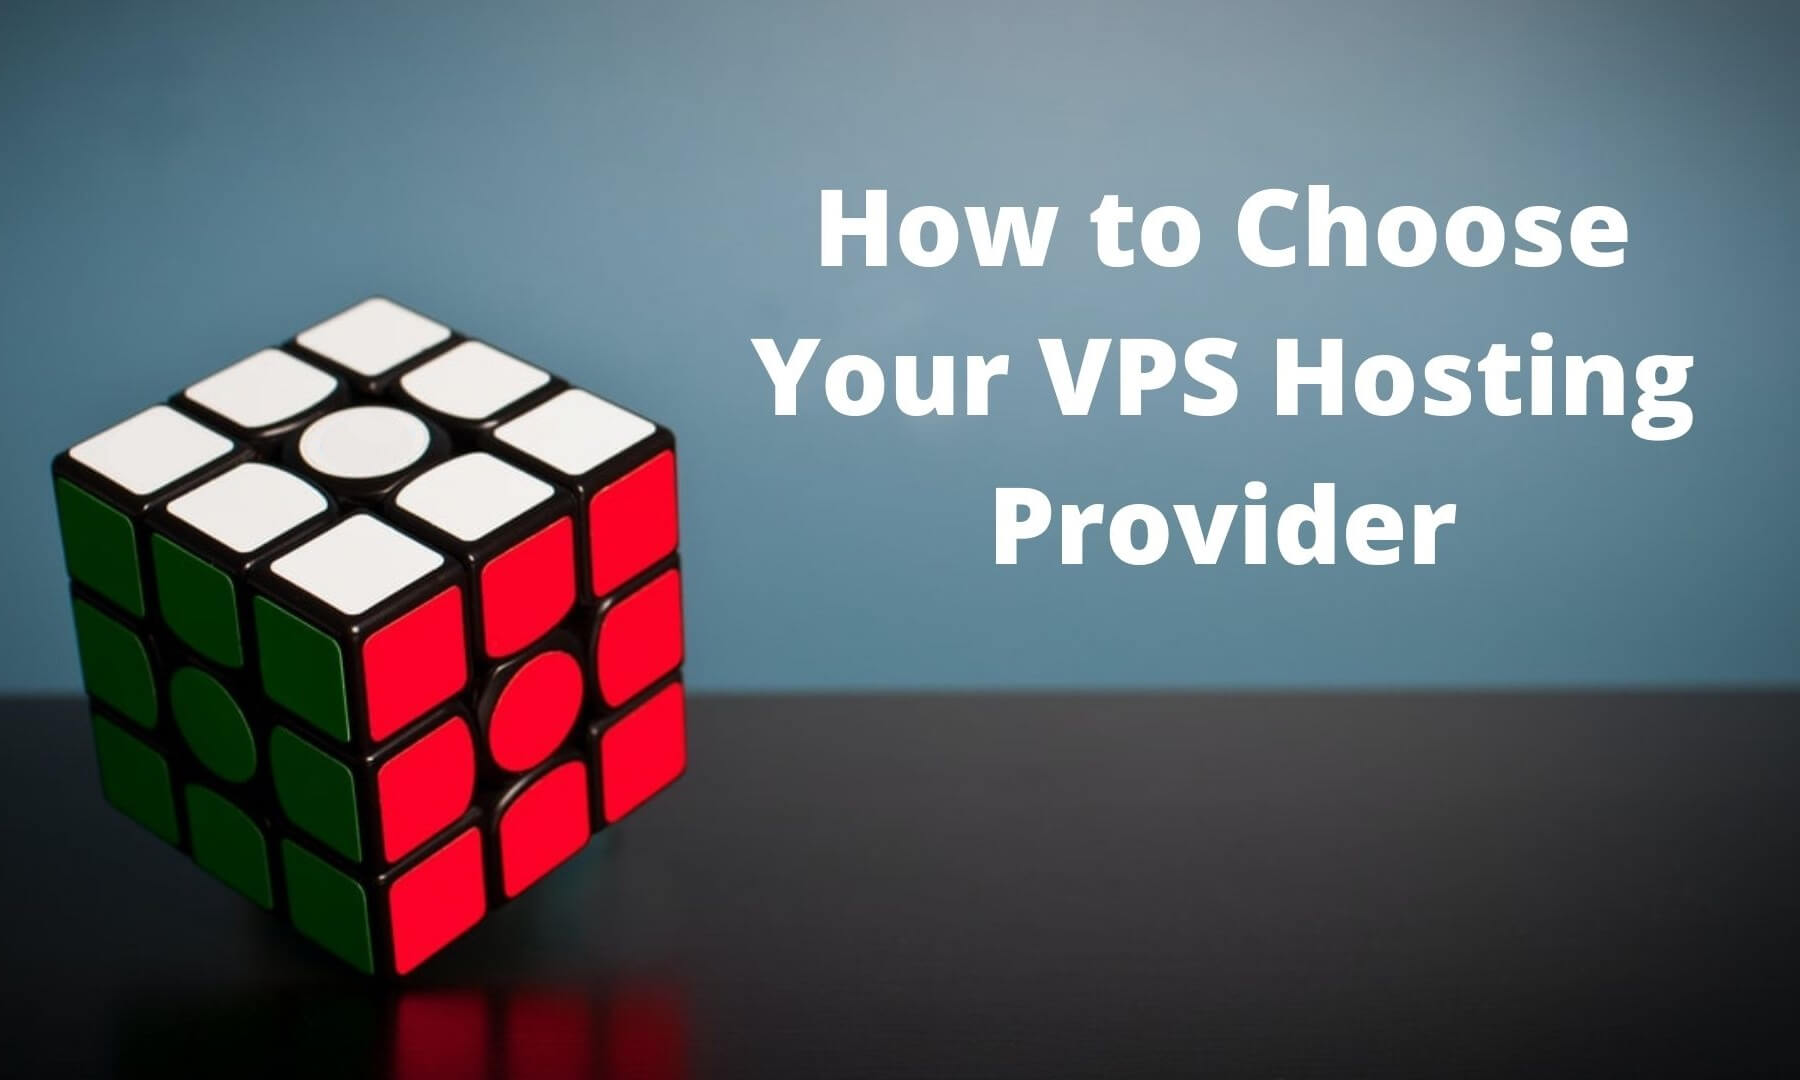 How-to-Choose-Your-VPS-Hosting-Provider-1